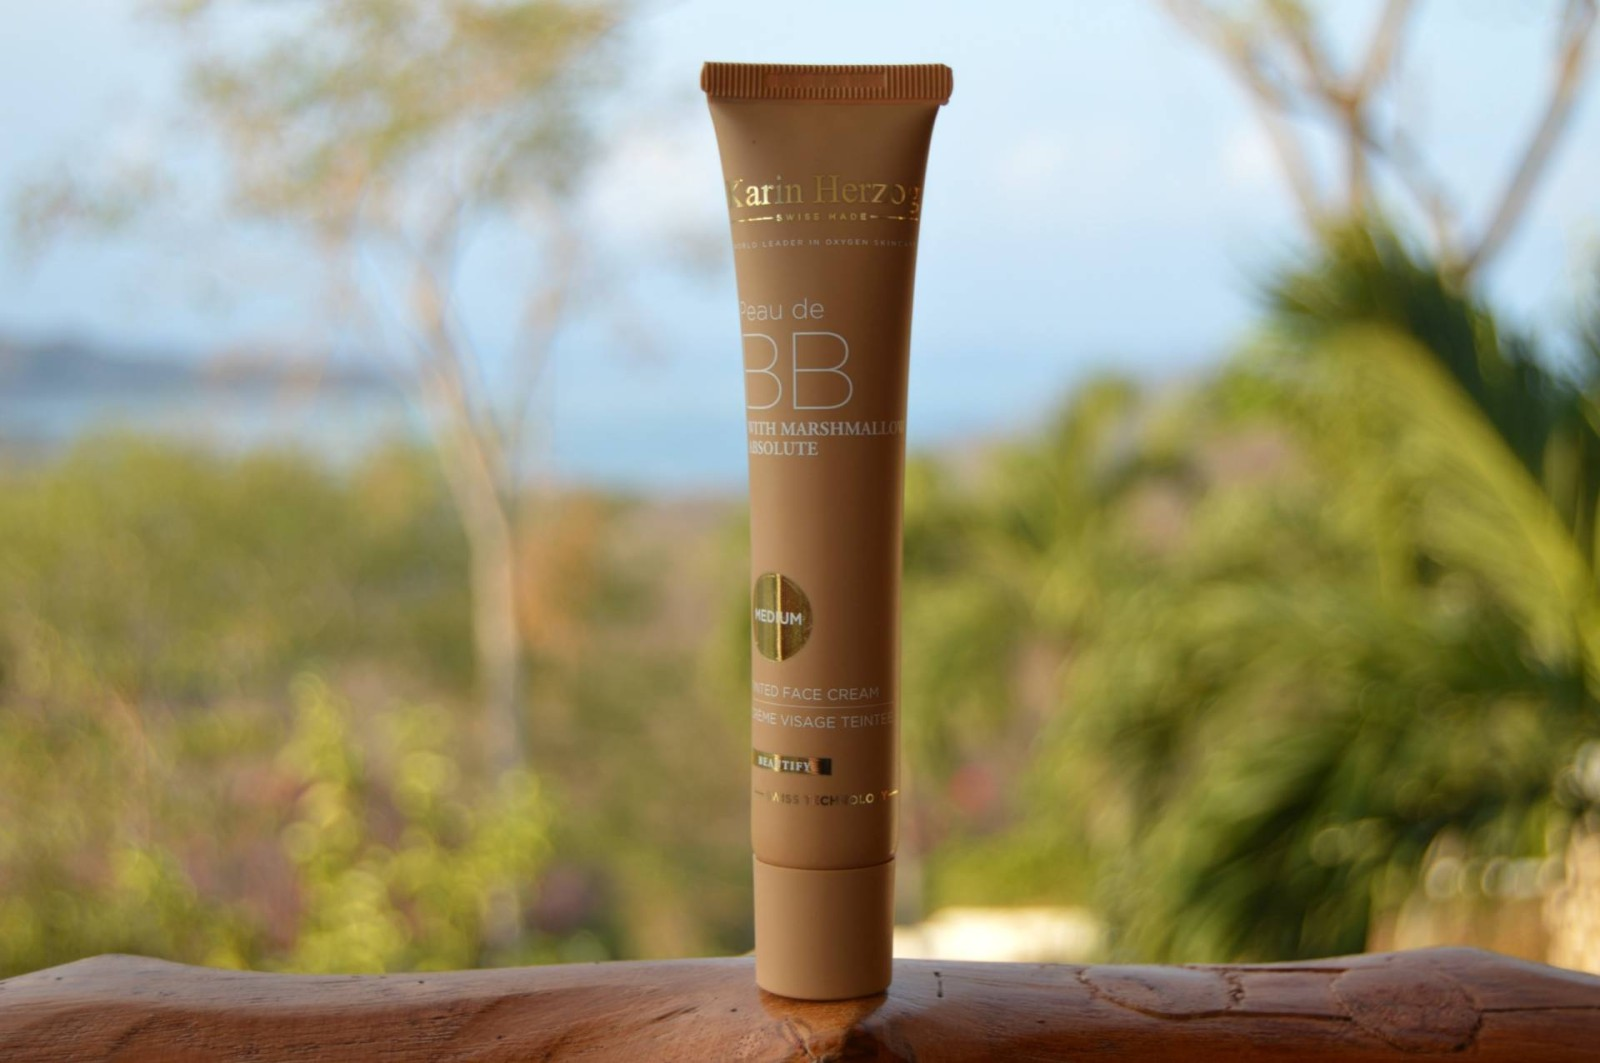 *NEW* Karin Herzog Peau de BB Cream with Marshmallow Absolue